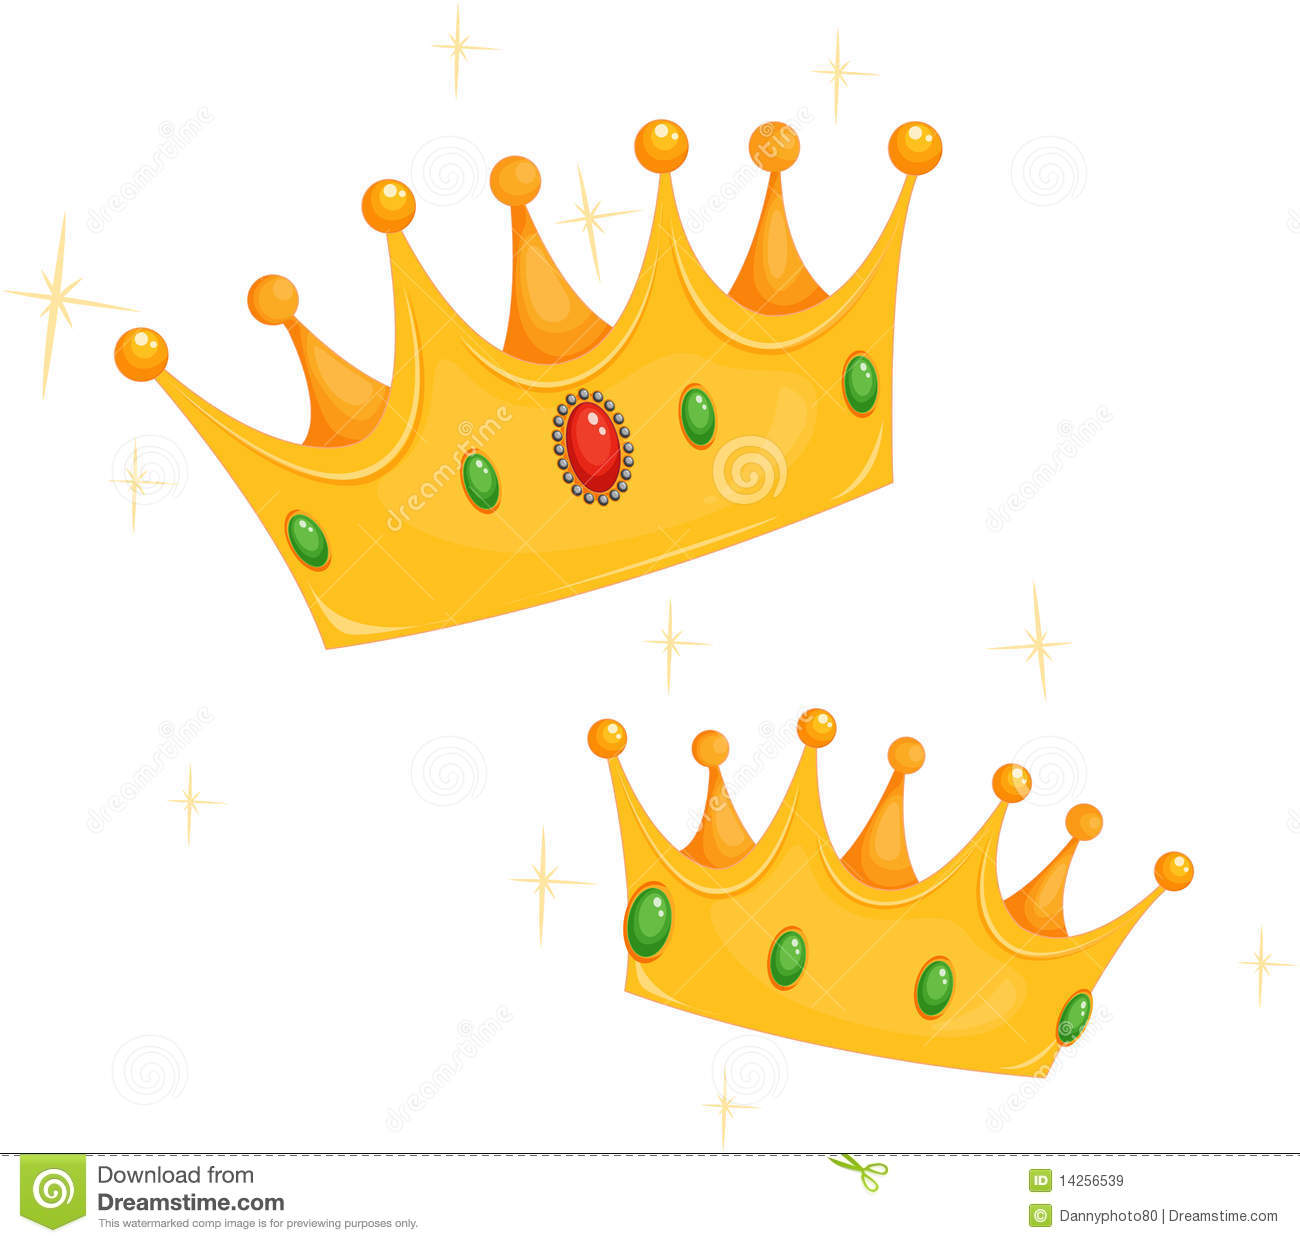 King and queen crown clipart banner royalty free download King and queen crown clipart - ClipartFest banner royalty free download